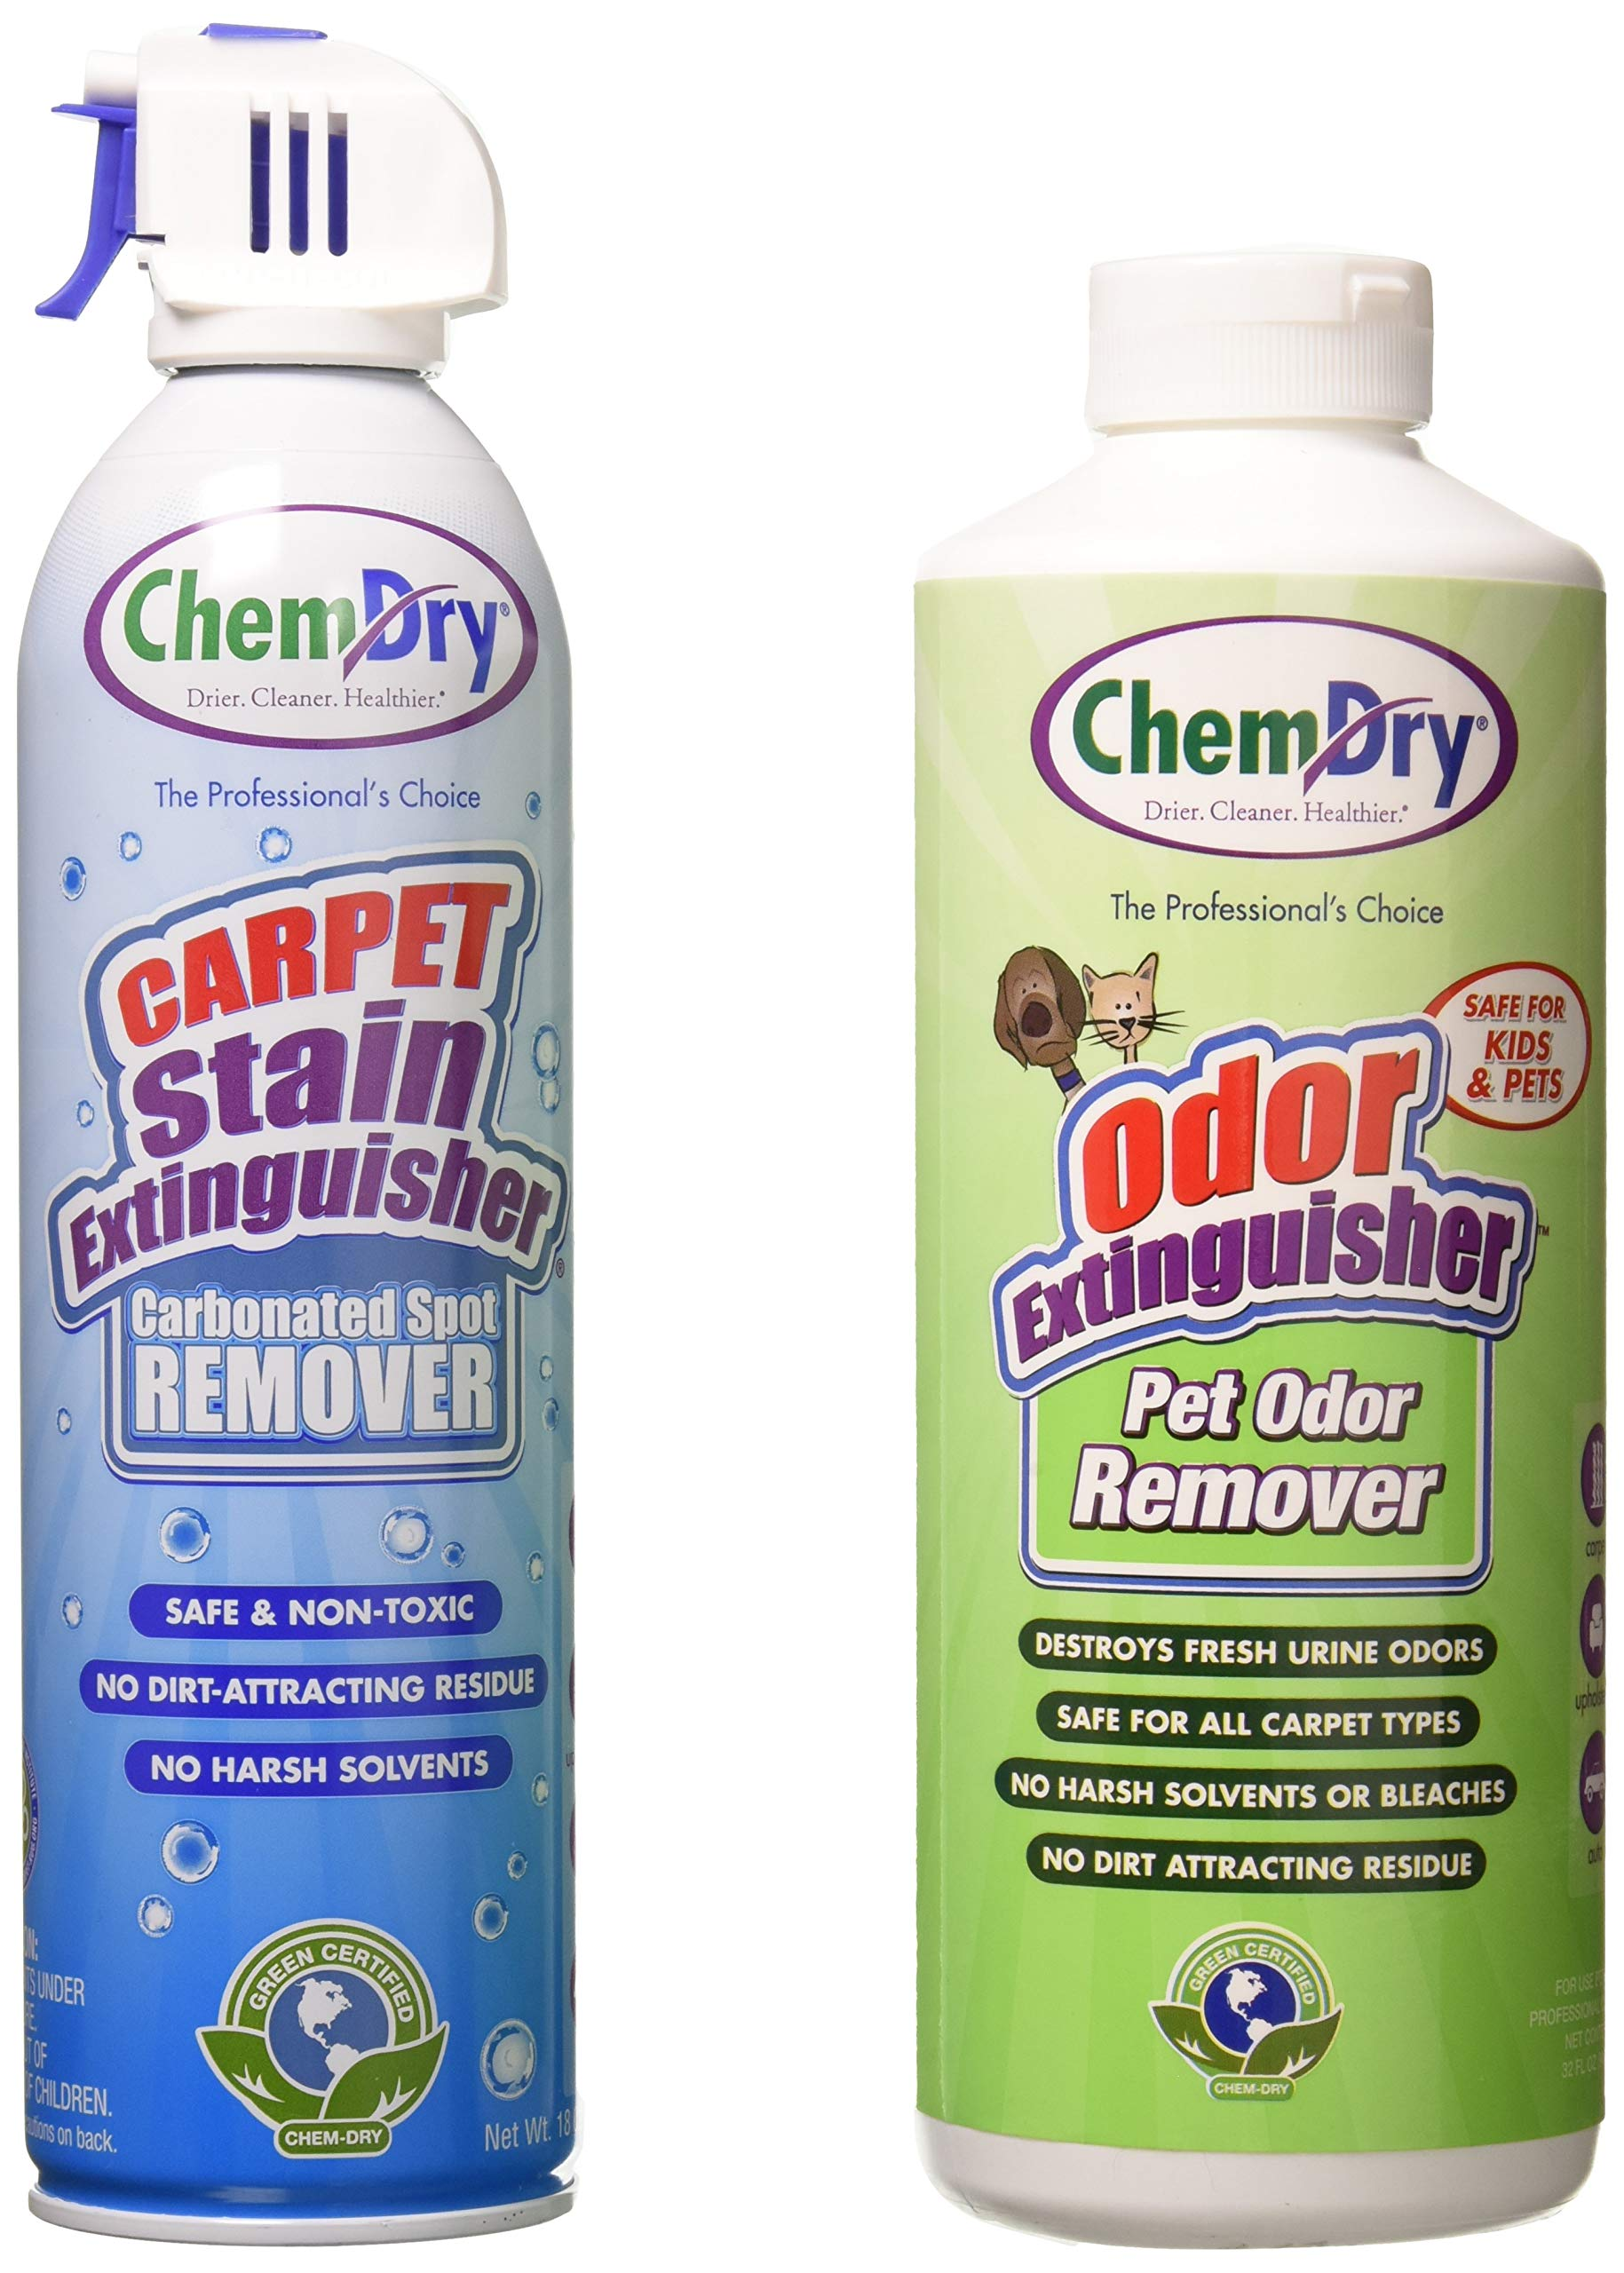 Chem-Dry Carpet Stain Extinguisher and Pet Odor Extinguisher Combo 18. oz  2 pack by CHEM-DRY(R)